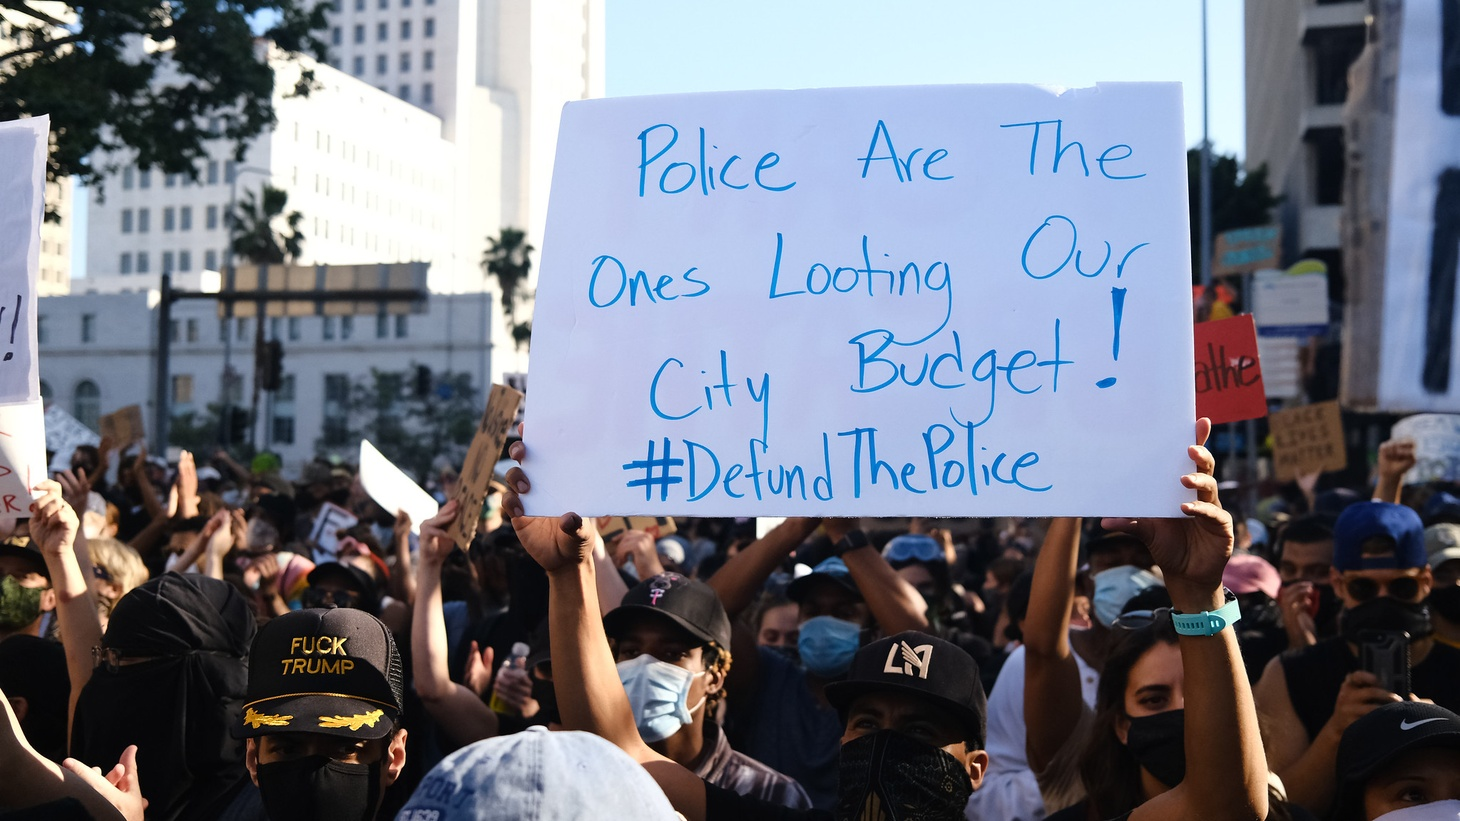 Demonstrators gathered in front of the Los Angeles County Hall of Justice to protest District Attorney Jackie Lacey. About 10,000 people protested police violence, the proposed LA city budget of 54% to the LAPD, and the death of George Floyd.